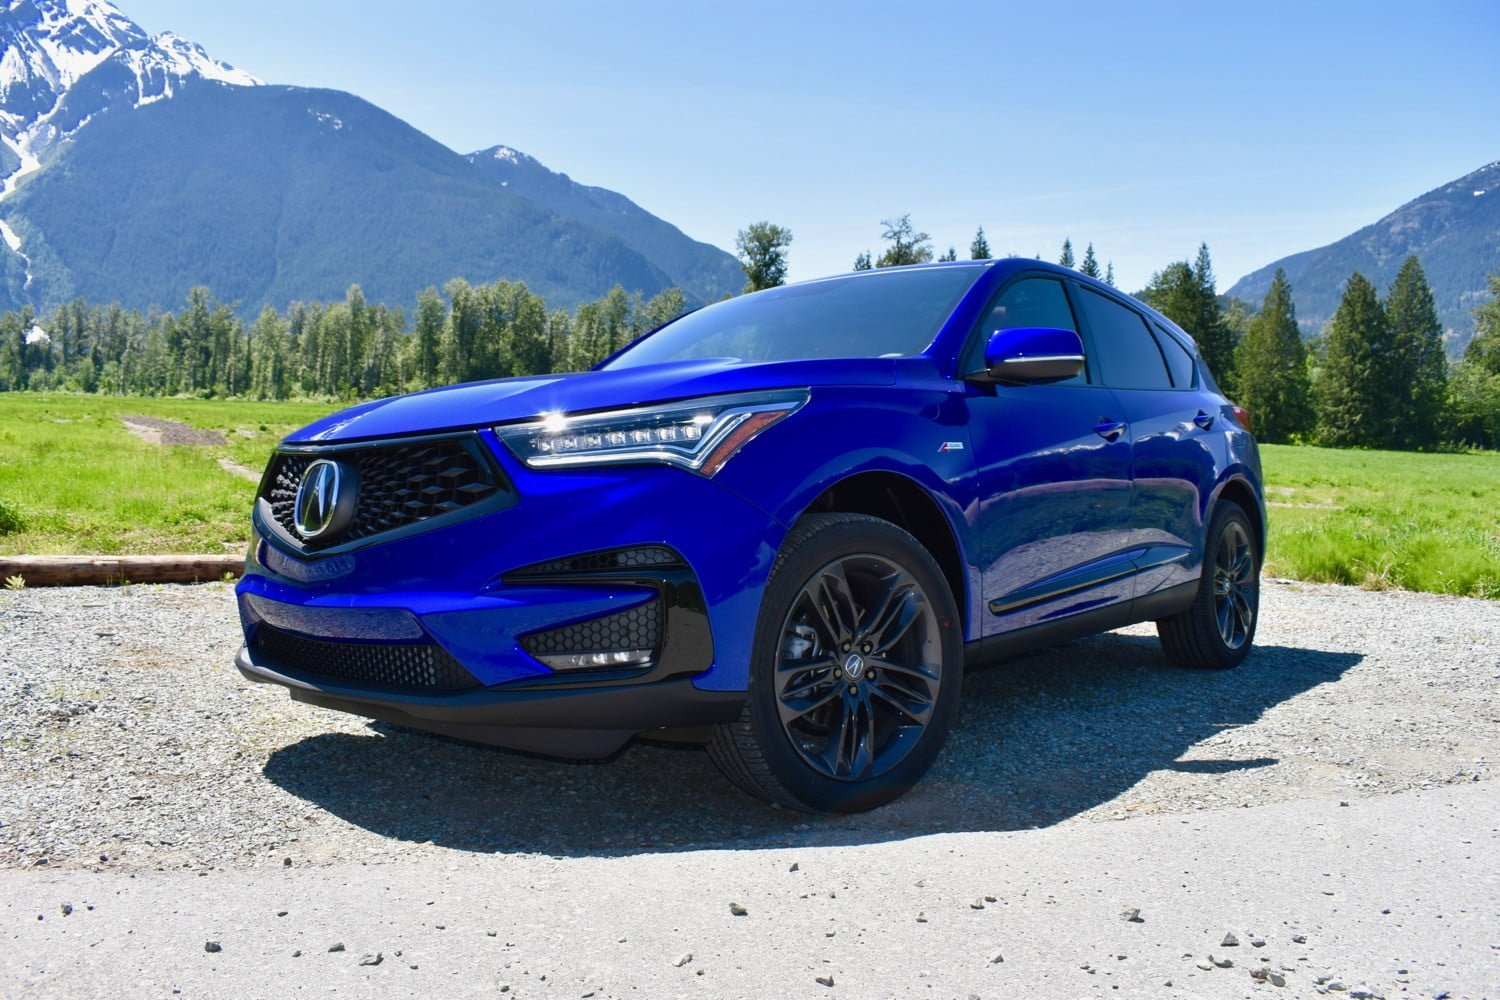 Redesigned Acura RDX SUVs Starting Price Holds Steady At - Acura suv price